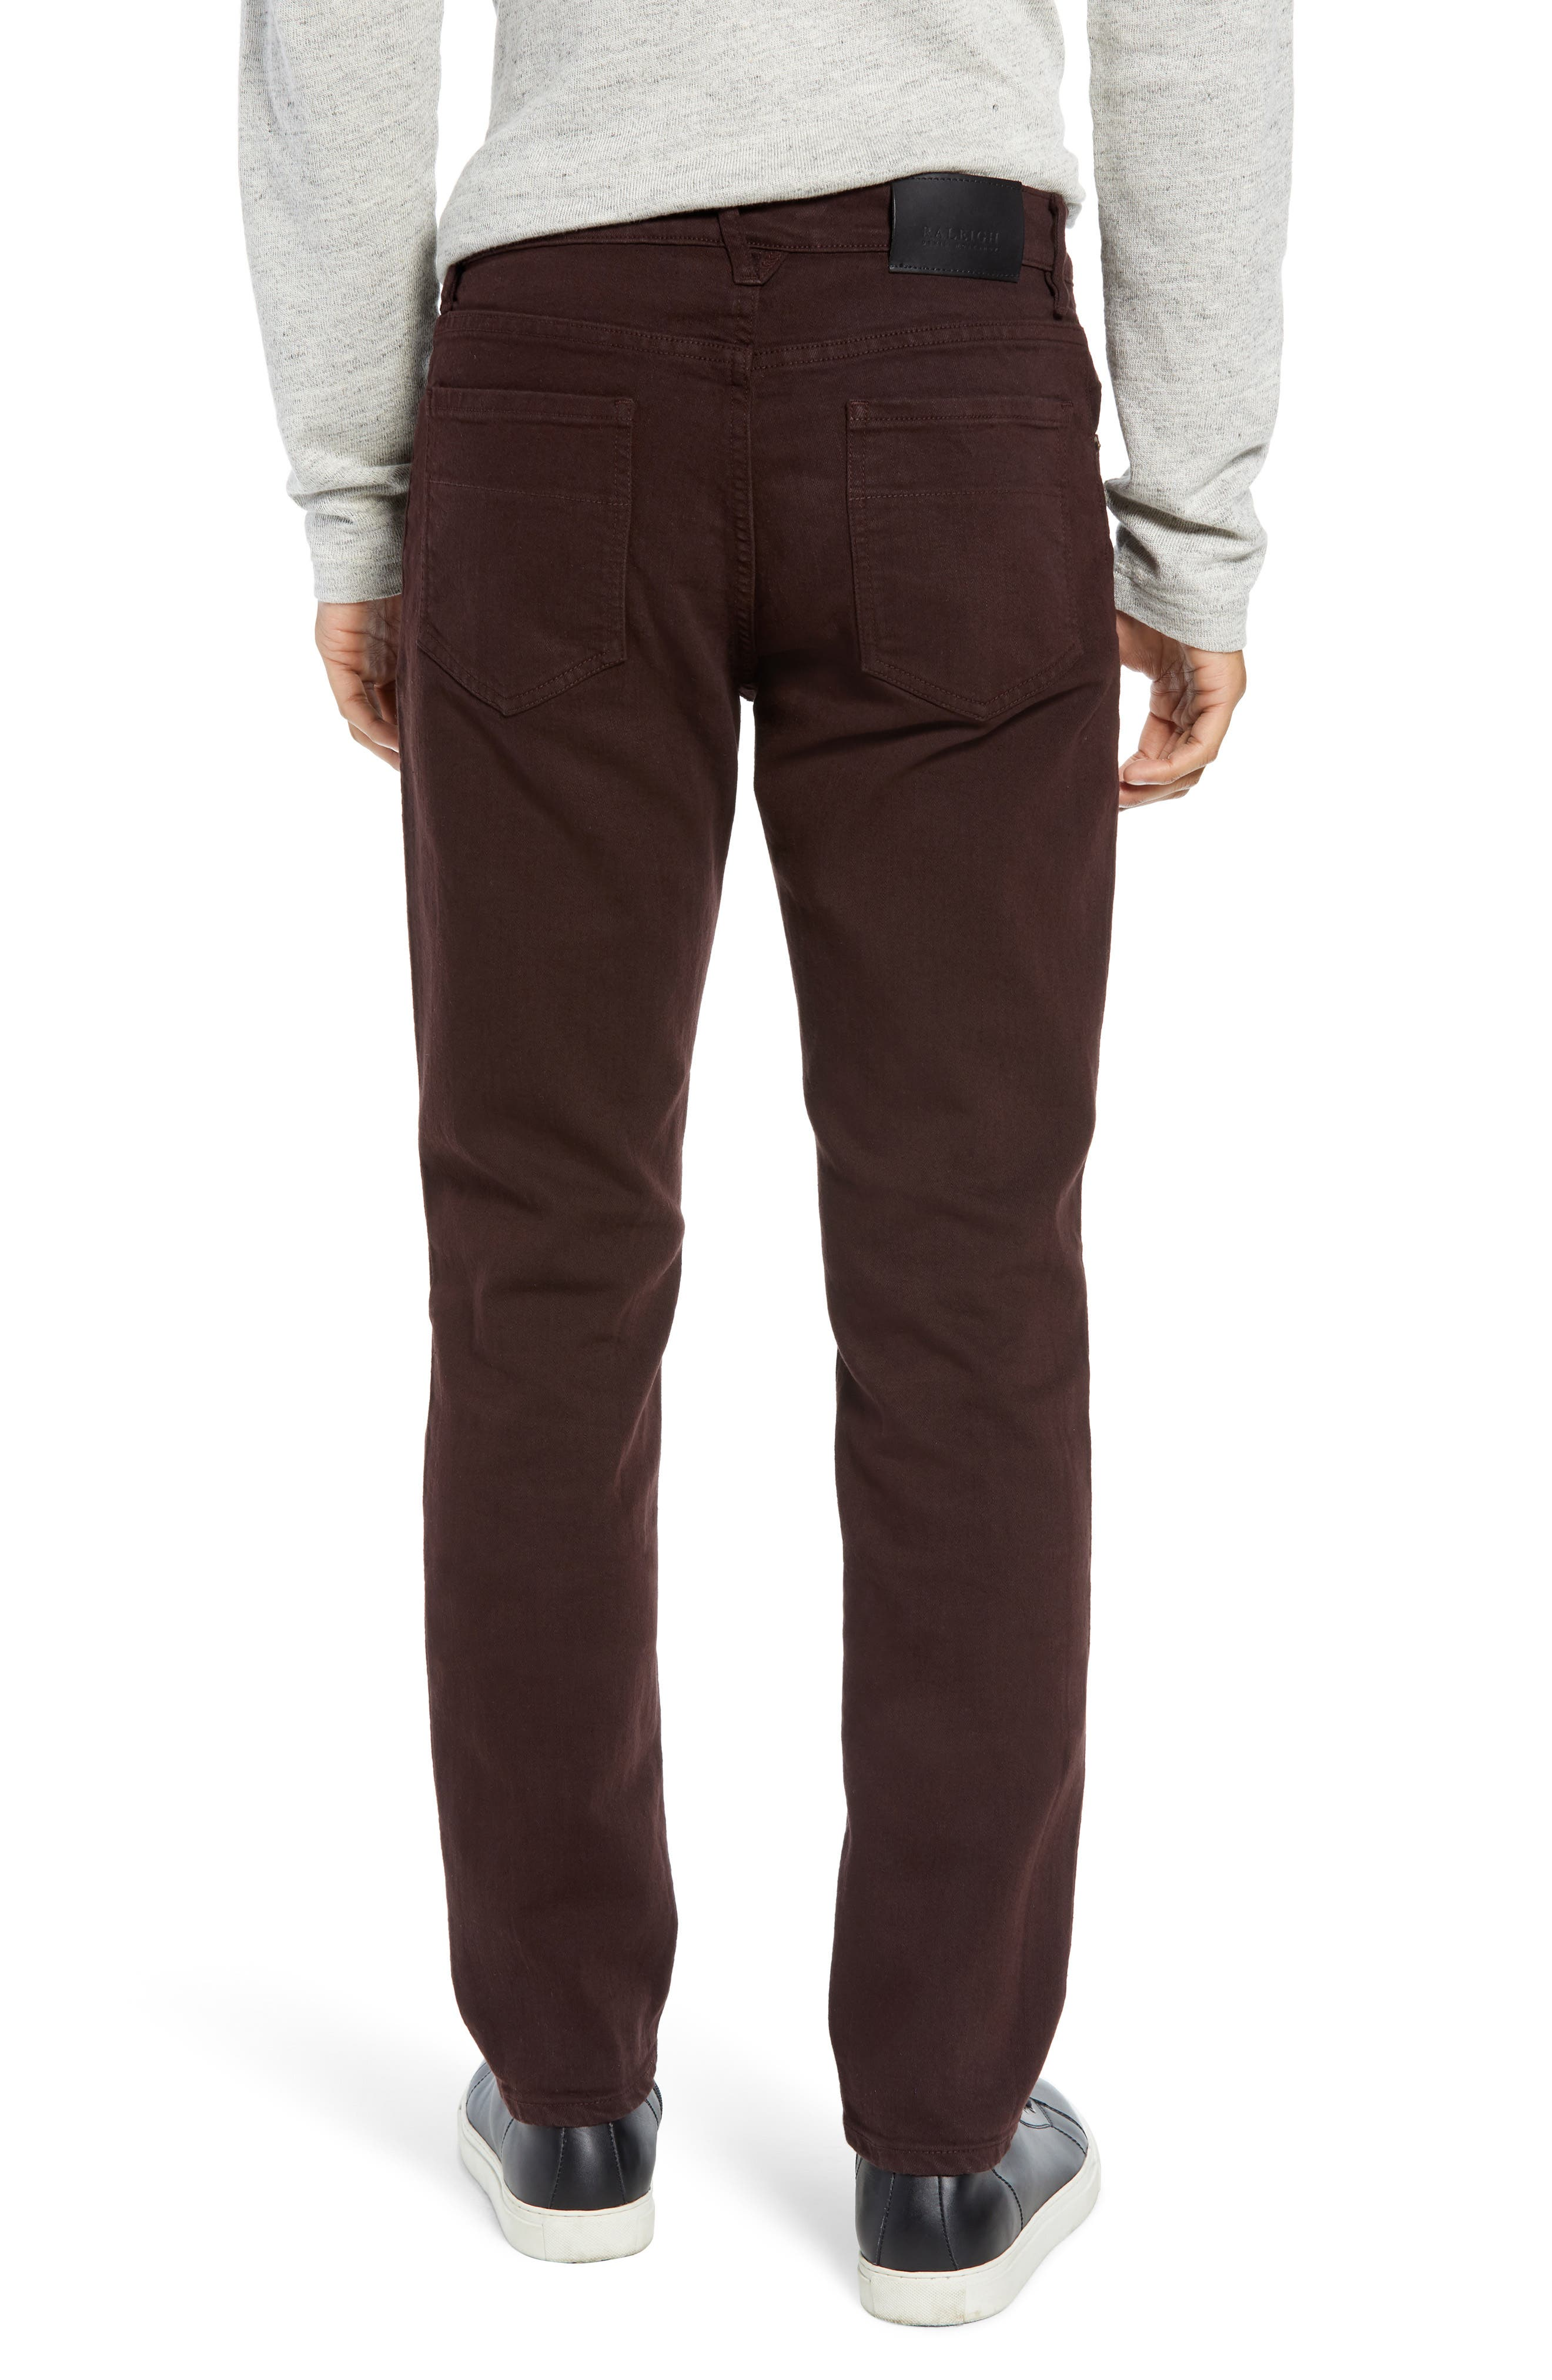 Raleight Denim Martin Skinny Fit Jeans,                             Alternate thumbnail 2, color,                             CURRANT